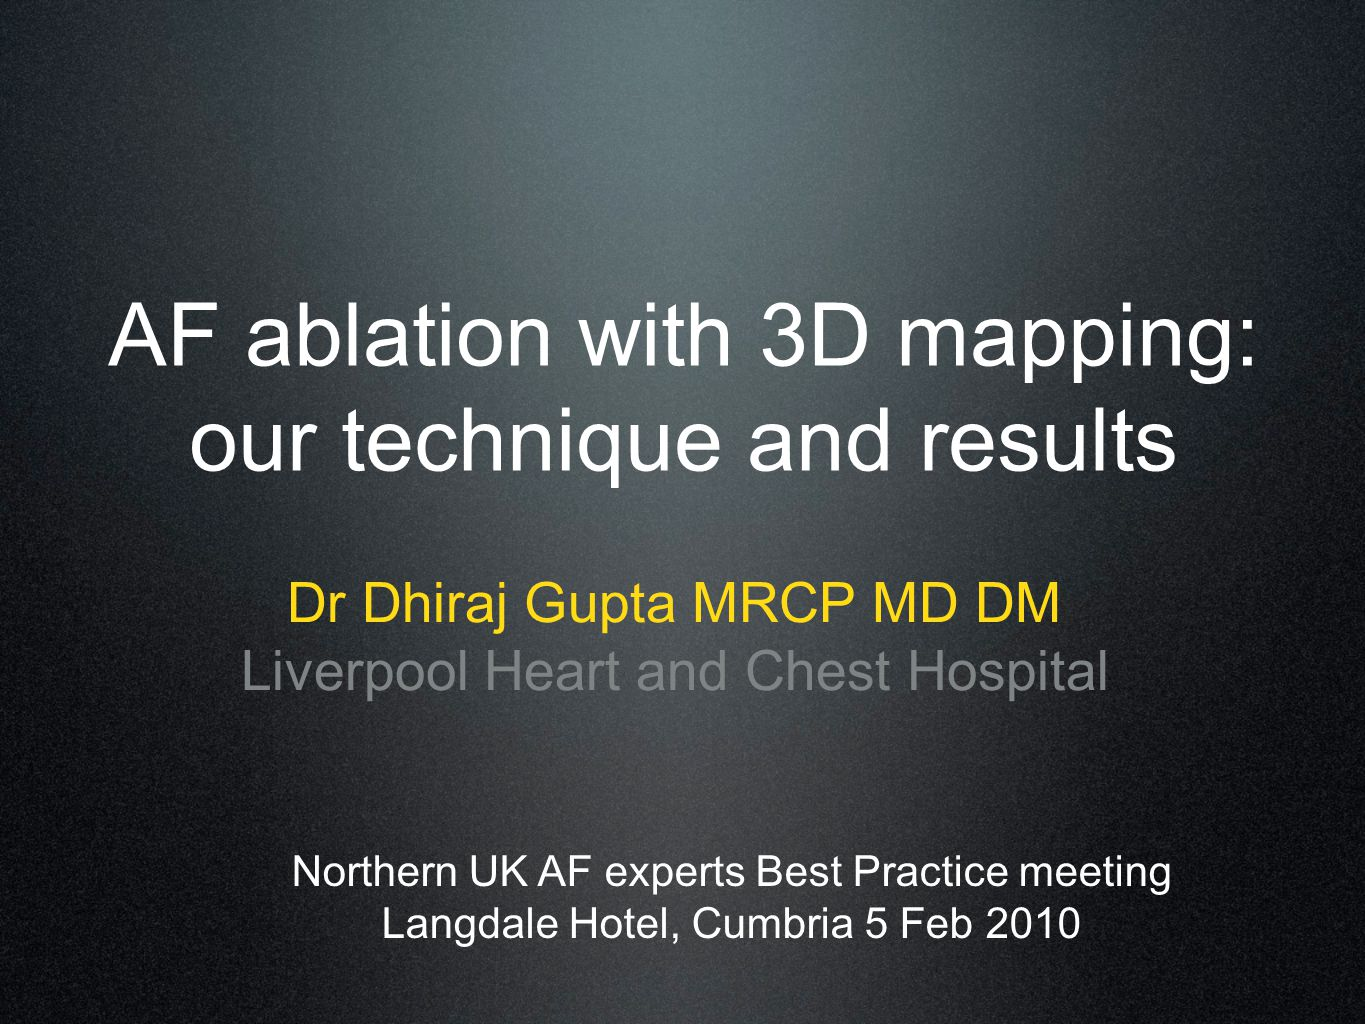 AF ablation with 3D mapping: our technique and results Dr Dhiraj Gupta MRCP MD DM Liverpool Heart and Chest Hospital Northern UK AF experts Best Practice meeting Langdale Hotel, Cumbria 5 Feb 2010